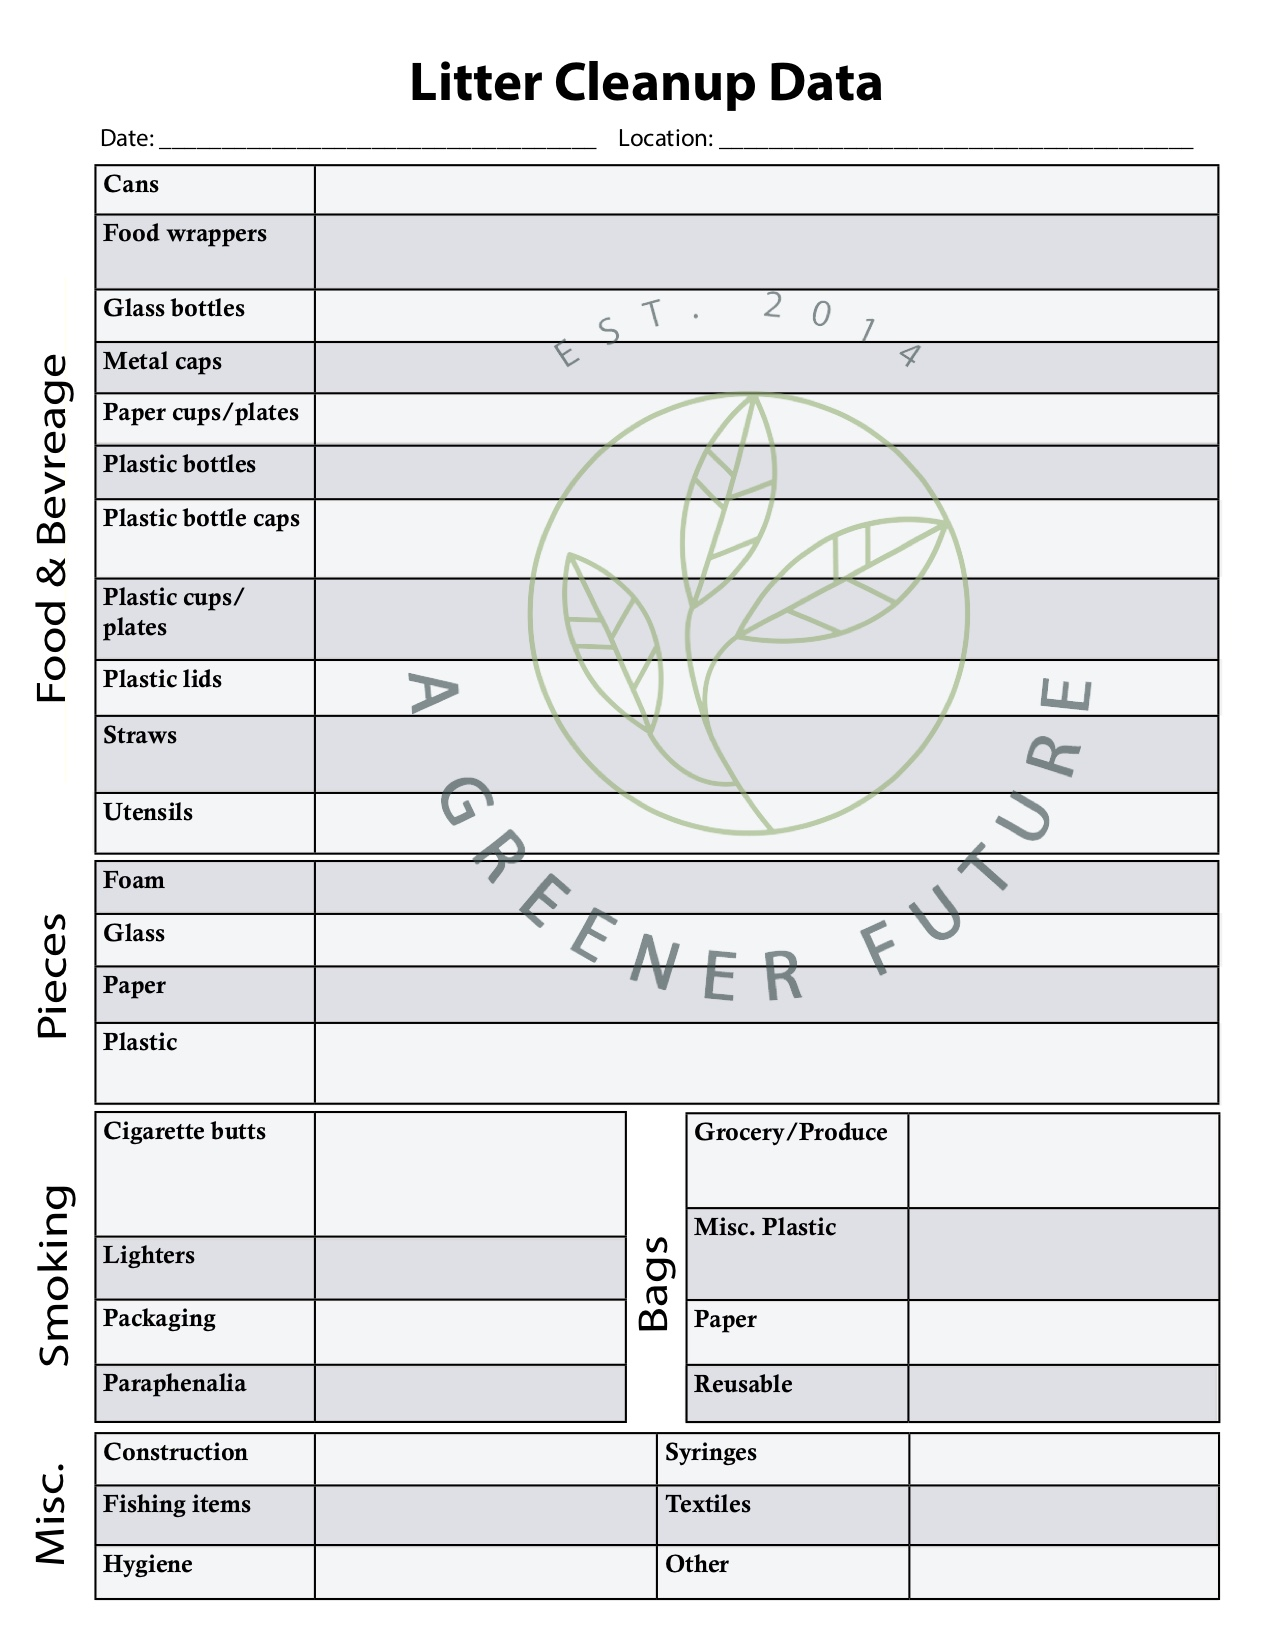 Data Sheet - Used to record the litter picked up. Categories are in alphabetical order. Please do your best to memorize where items are located so you can find them more quickly during the recording process.